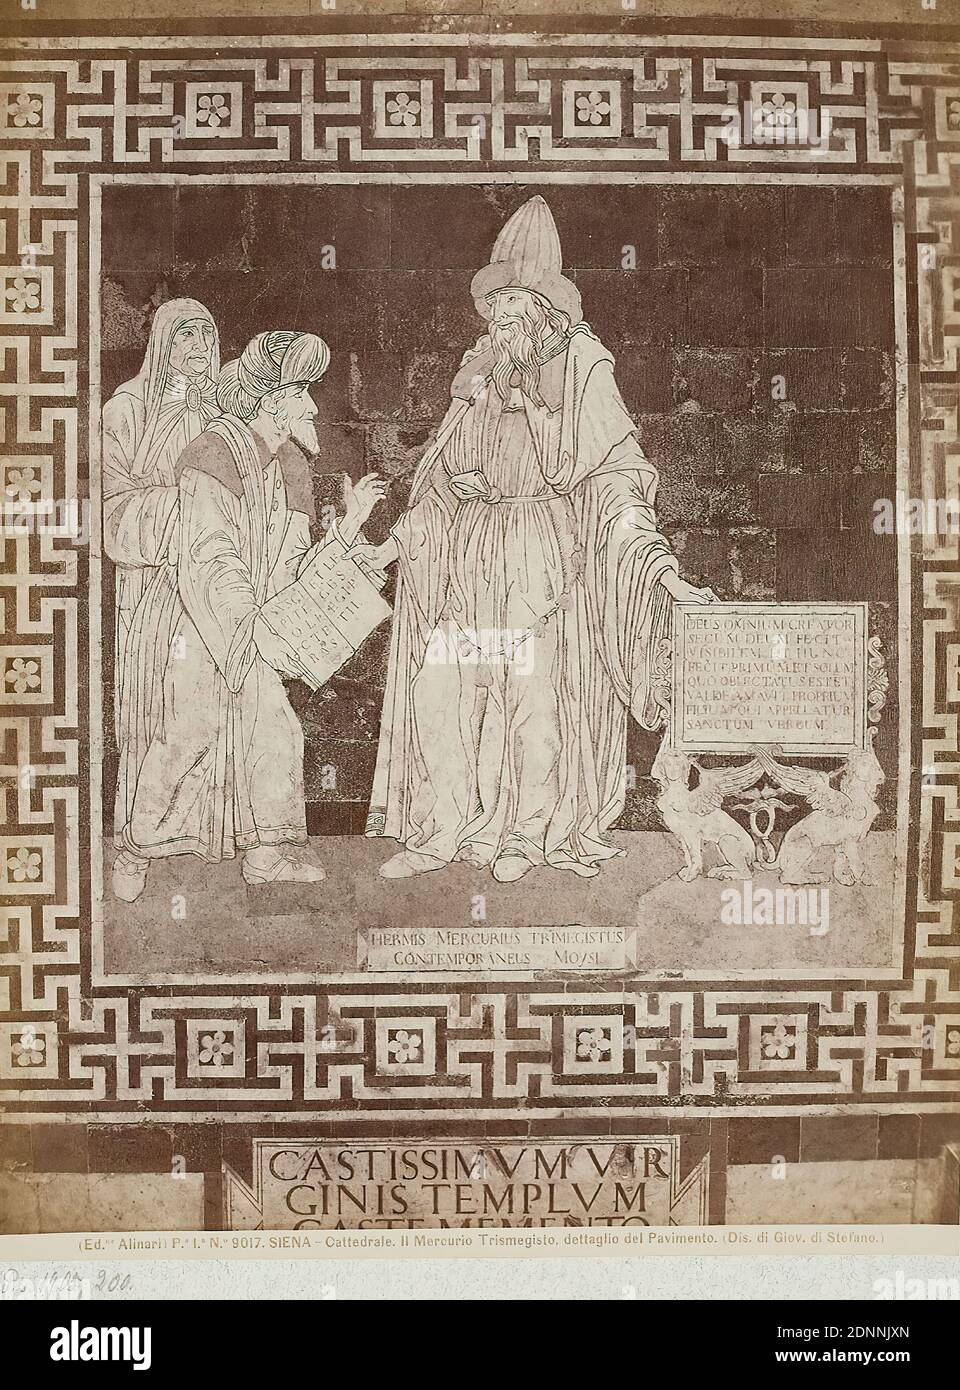 design by Giovanni di Stefano, history of Hermes Trismegistos, detail of the floor in the Cathedral of Siena, albumin paper, black and white positive process, image size: height: 25,40 cm; width: 19,30 cm, SIENA - Cattedrale. Il Mercurio Trismegisto, dettaglio del Pavimento. (Dis. di Giov. di Stefano.) Verso Stamp: MUSEUM F. ART & CRAFT Hamburg, photography, prophets Stock Photo